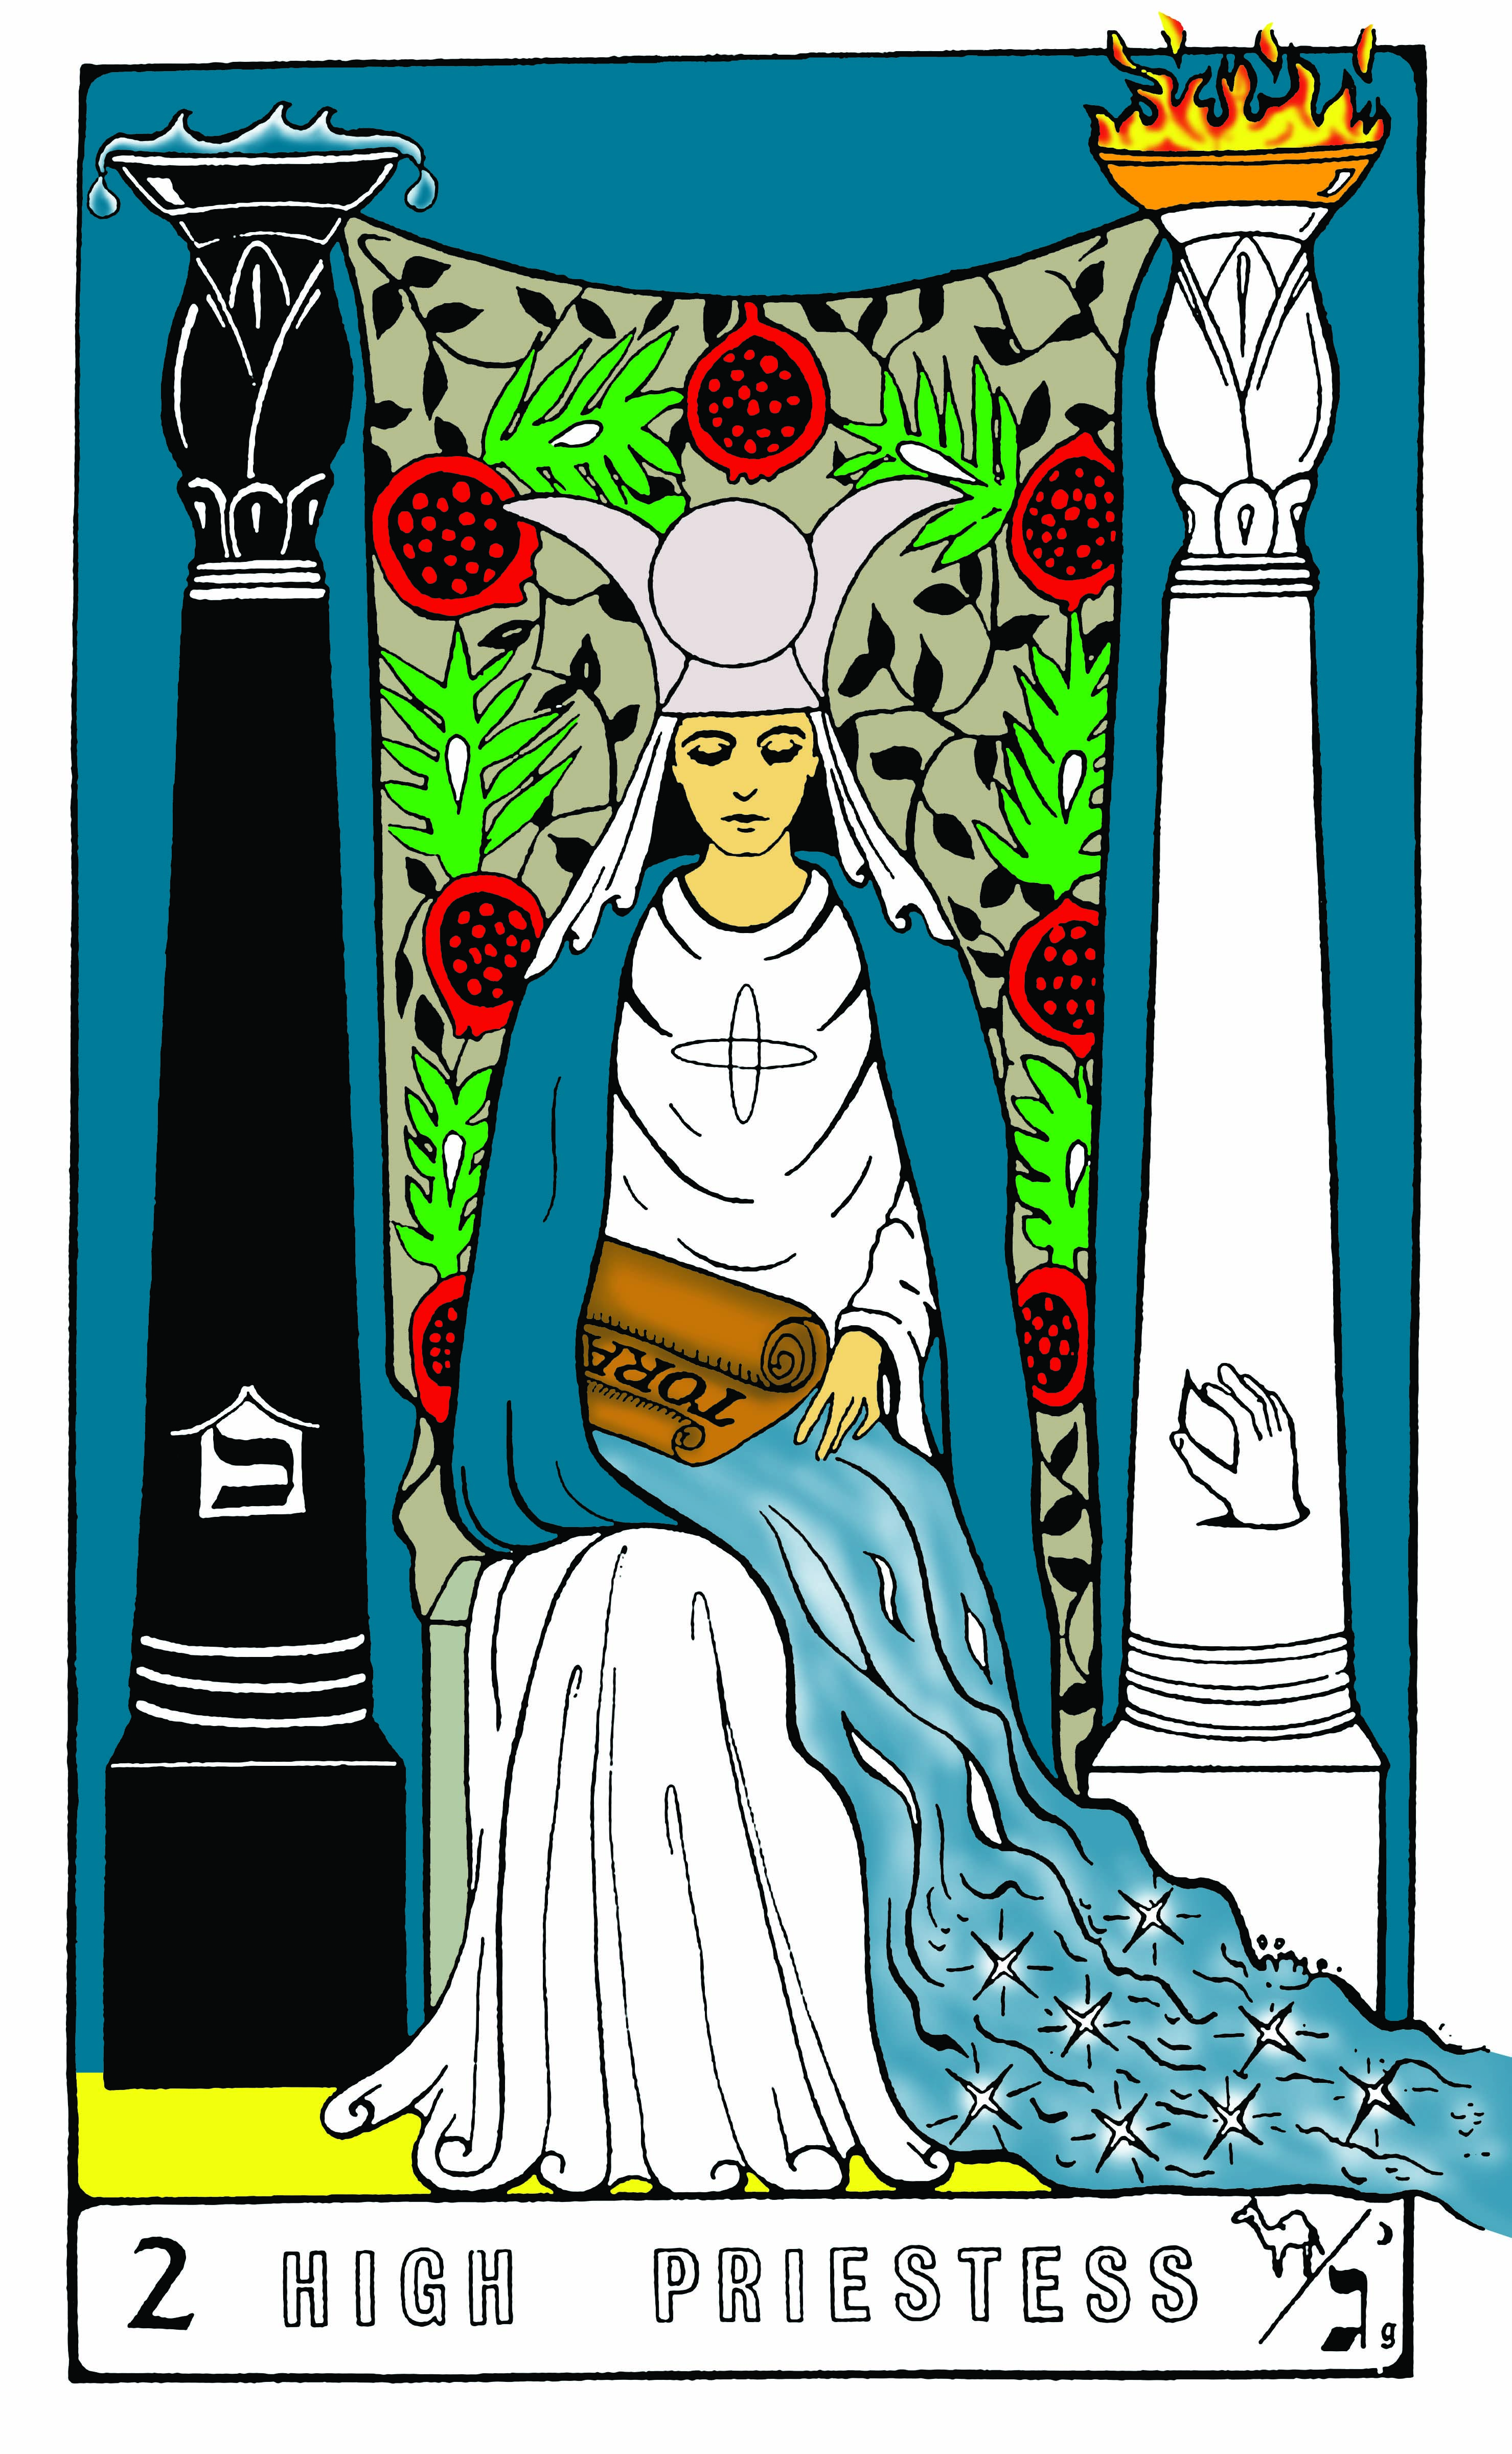 High Priestess Full Colorful Deck Major Stock Illustration: Key 2 – High Priestess